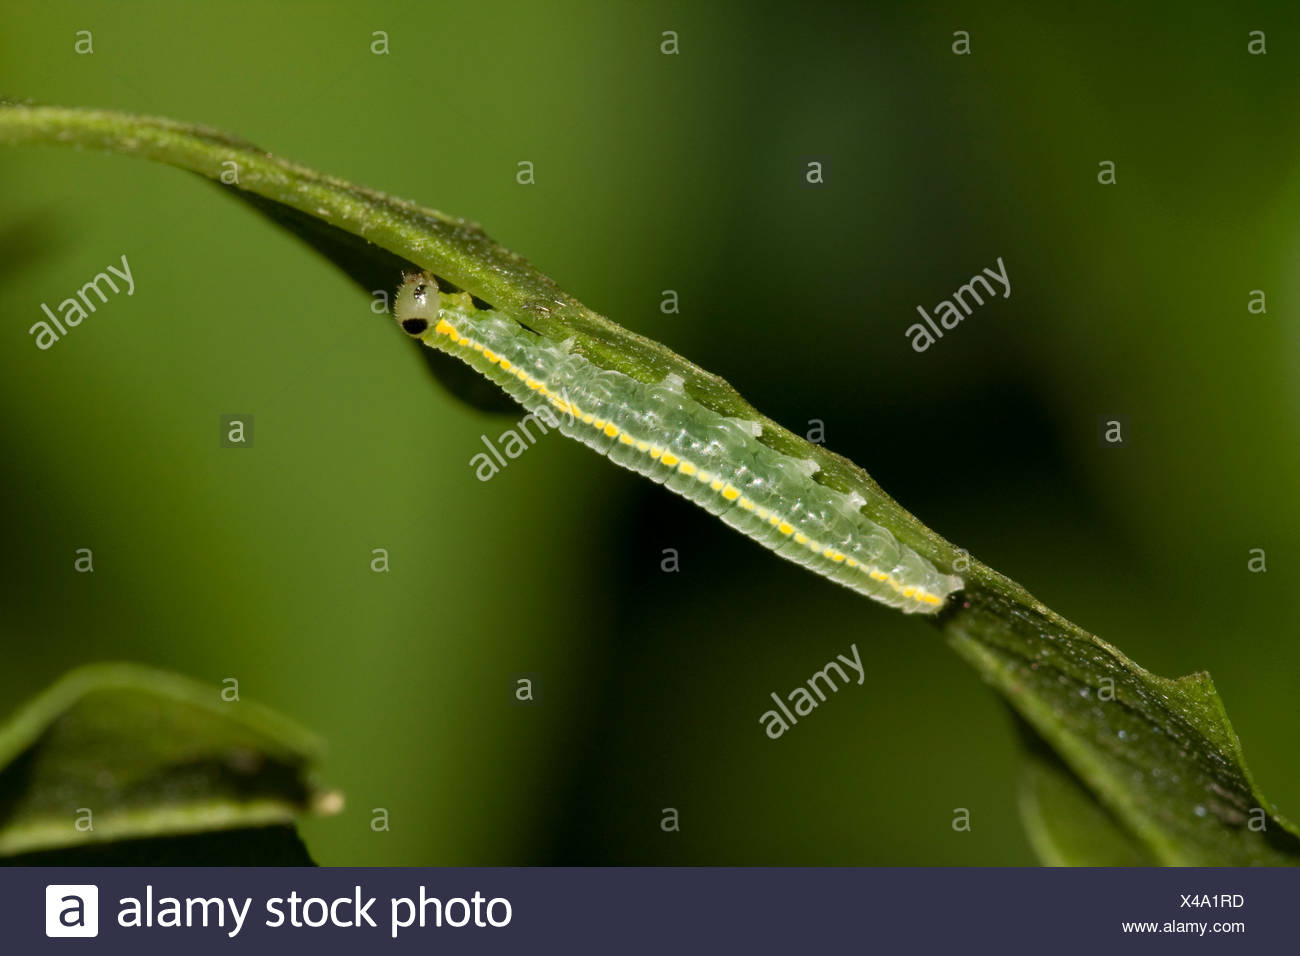 brush-footed butterfly, glasswing (Greta oto), caterpillar at a leaf - Stock Image